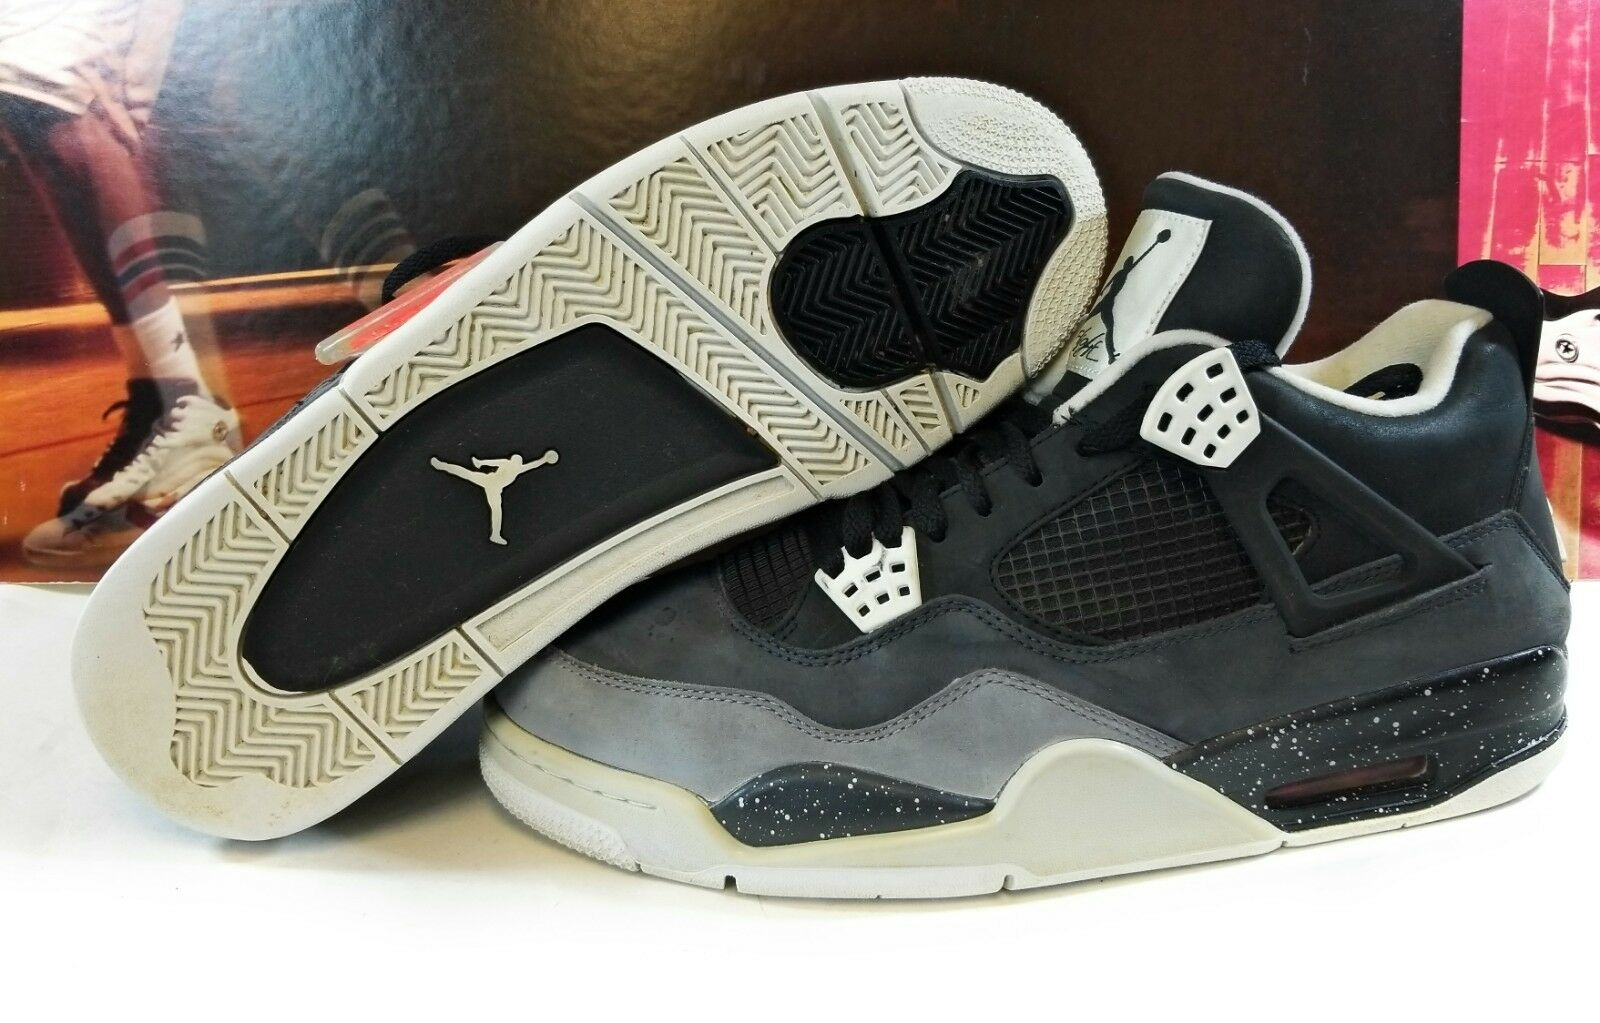 Pre-owned Mens Nike Air Jordan Retro 4 Black Cool Grey Fear Pack Sneakers RARE